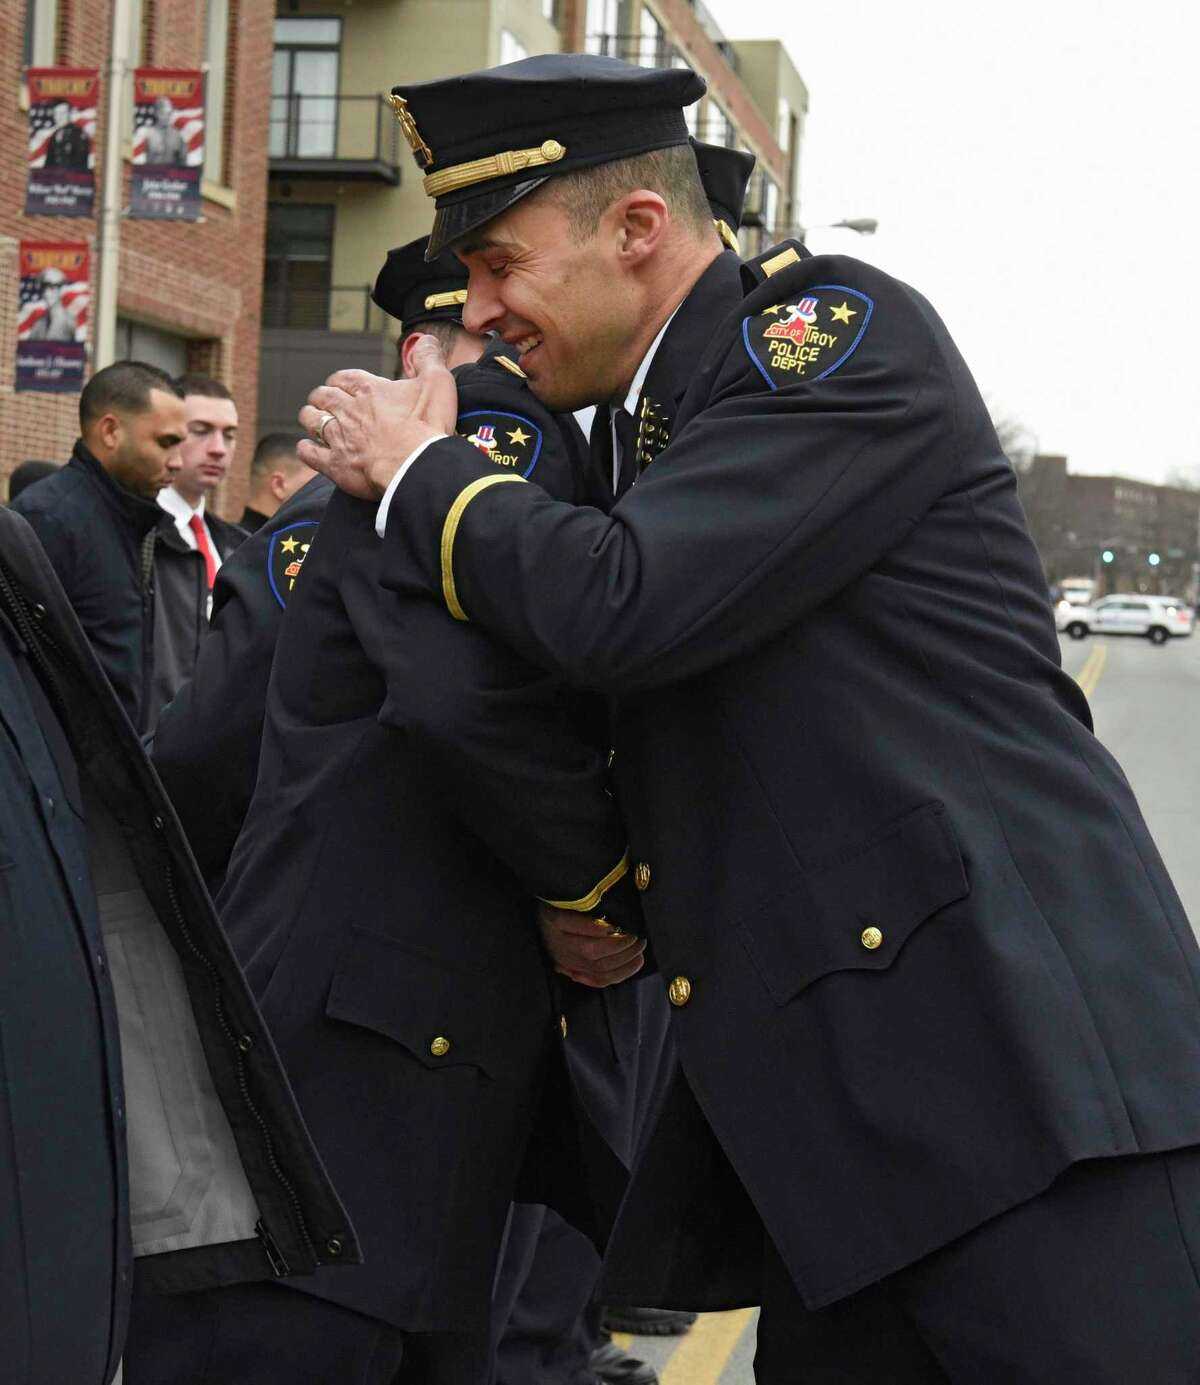 Officer Tom Bevevino hugs Detective Capt. Joseph Centanni, right, while Centanni says goodbye to his police family as he is honored with a walkout ceremony upon his retirement on Friday, Jan. 10, 2020 in Troy, N.Y. (Lori Van Buren/Times Union)